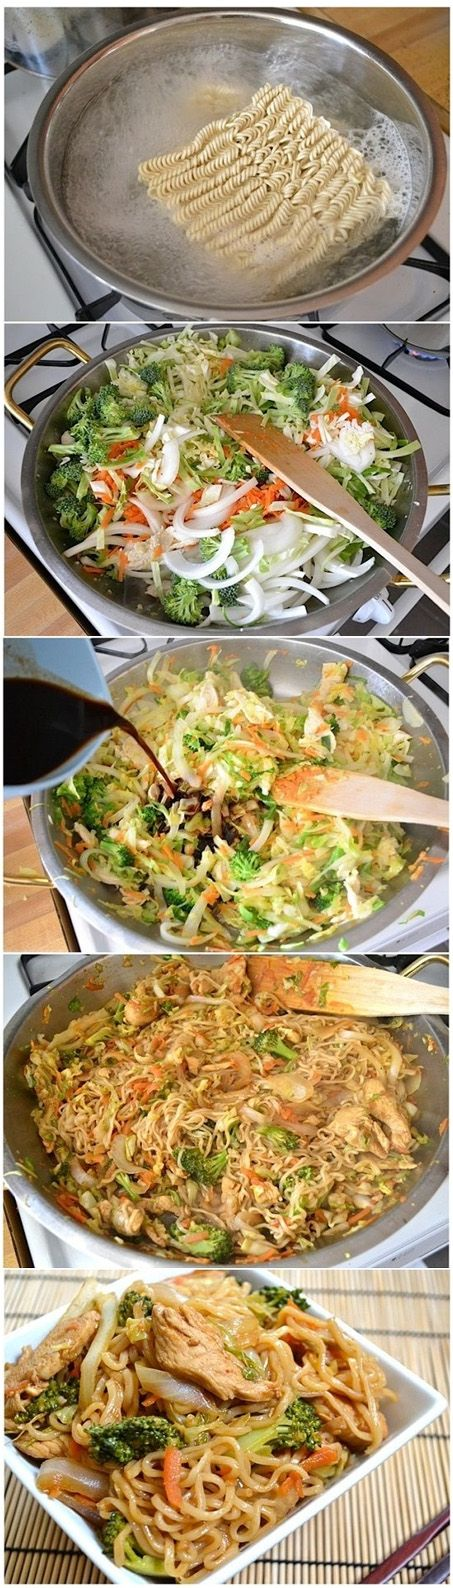 Ingredients ½ head green cabbage 1 medium yellow onion 2 medium carrots 1 small crown broccoli 2 inches fresh ginger 2 Tbsp vegetable oil 2 (3 oz.) packages ramen noodles seasoning packets discarded 1 tsp sesame oil (optional) ¼ cup soy sauce - without the chicken its vegan